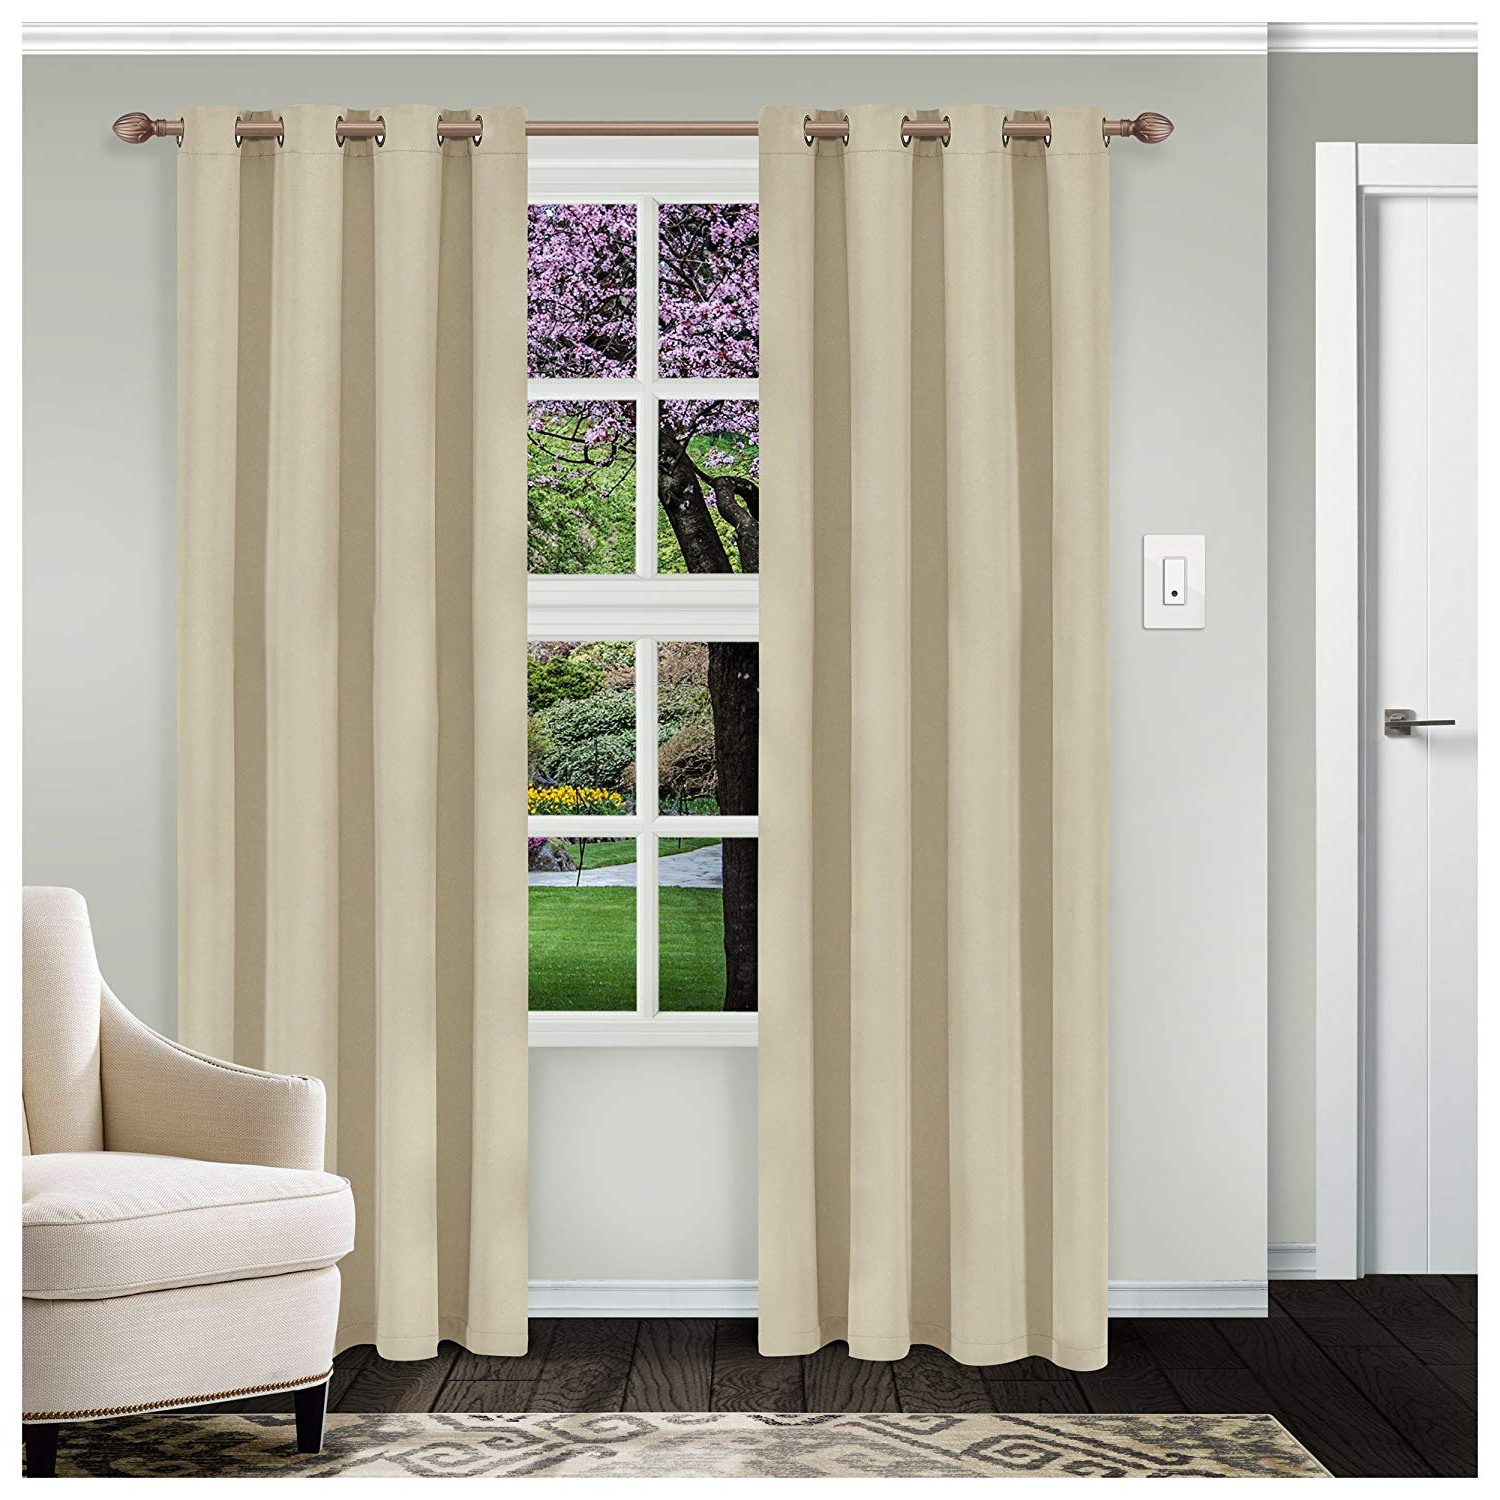 Widely Used Solid Insulated Thermal Blackout Curtain Panel Pairs Intended For Superior Classic Solid Blackout 2 Panel Curtains (52 X84), Ivory (View 15 of 20)